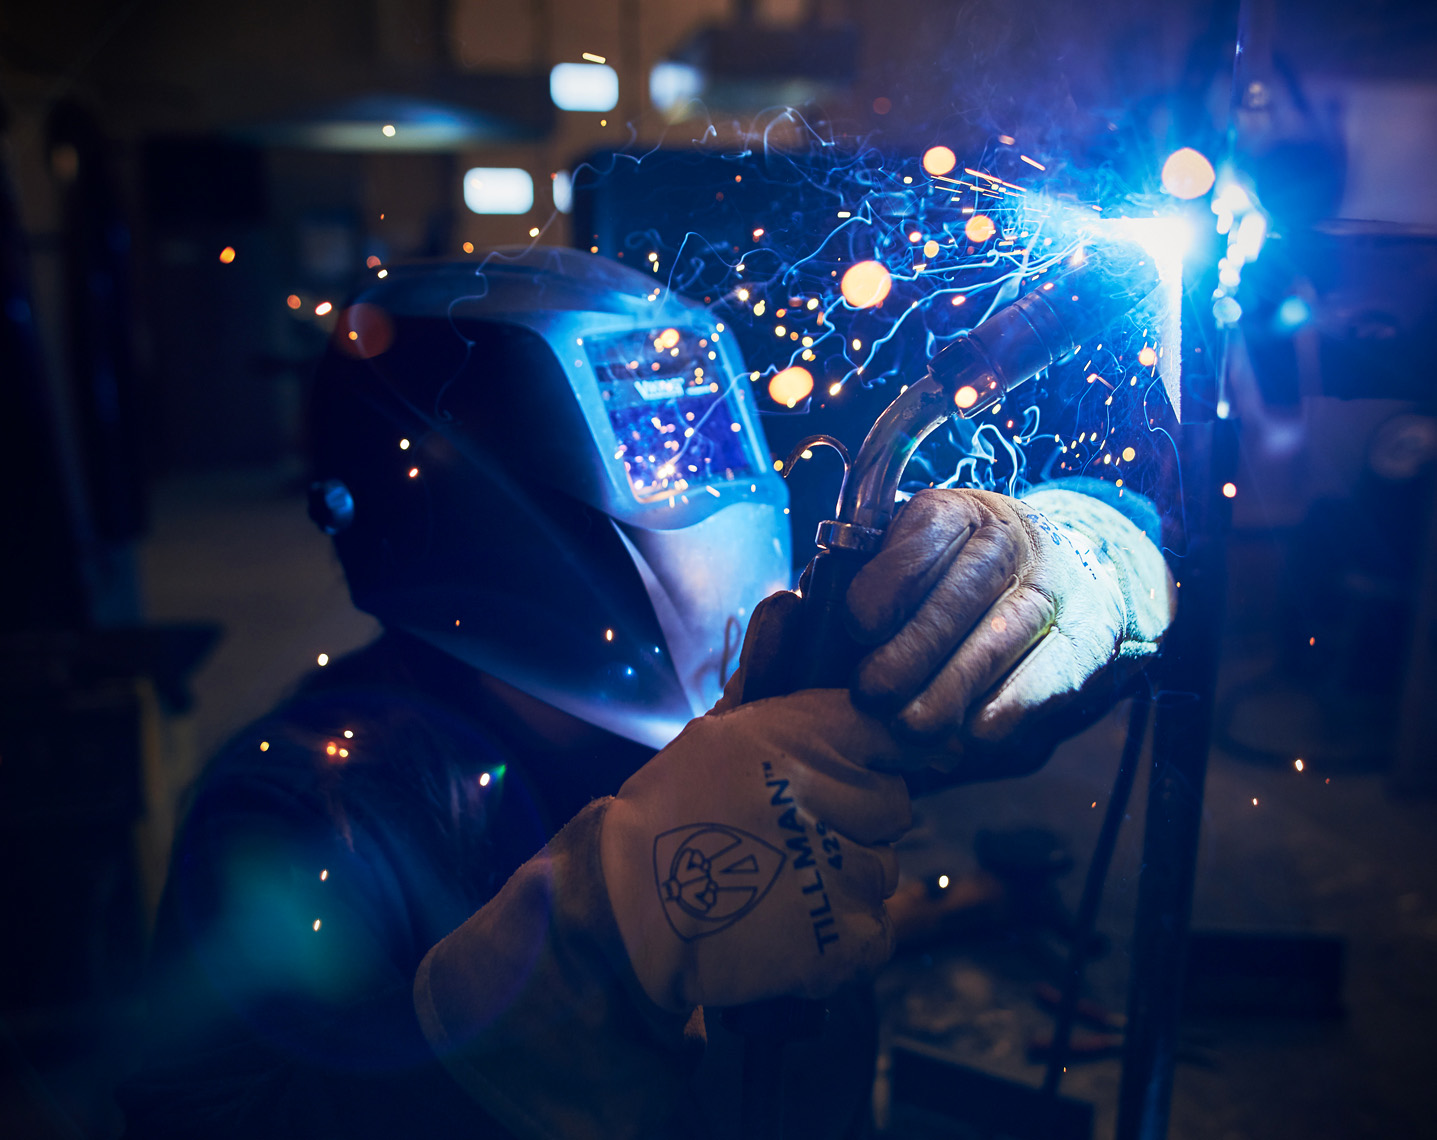 Arc welder with helmet and gloves fabricates metal